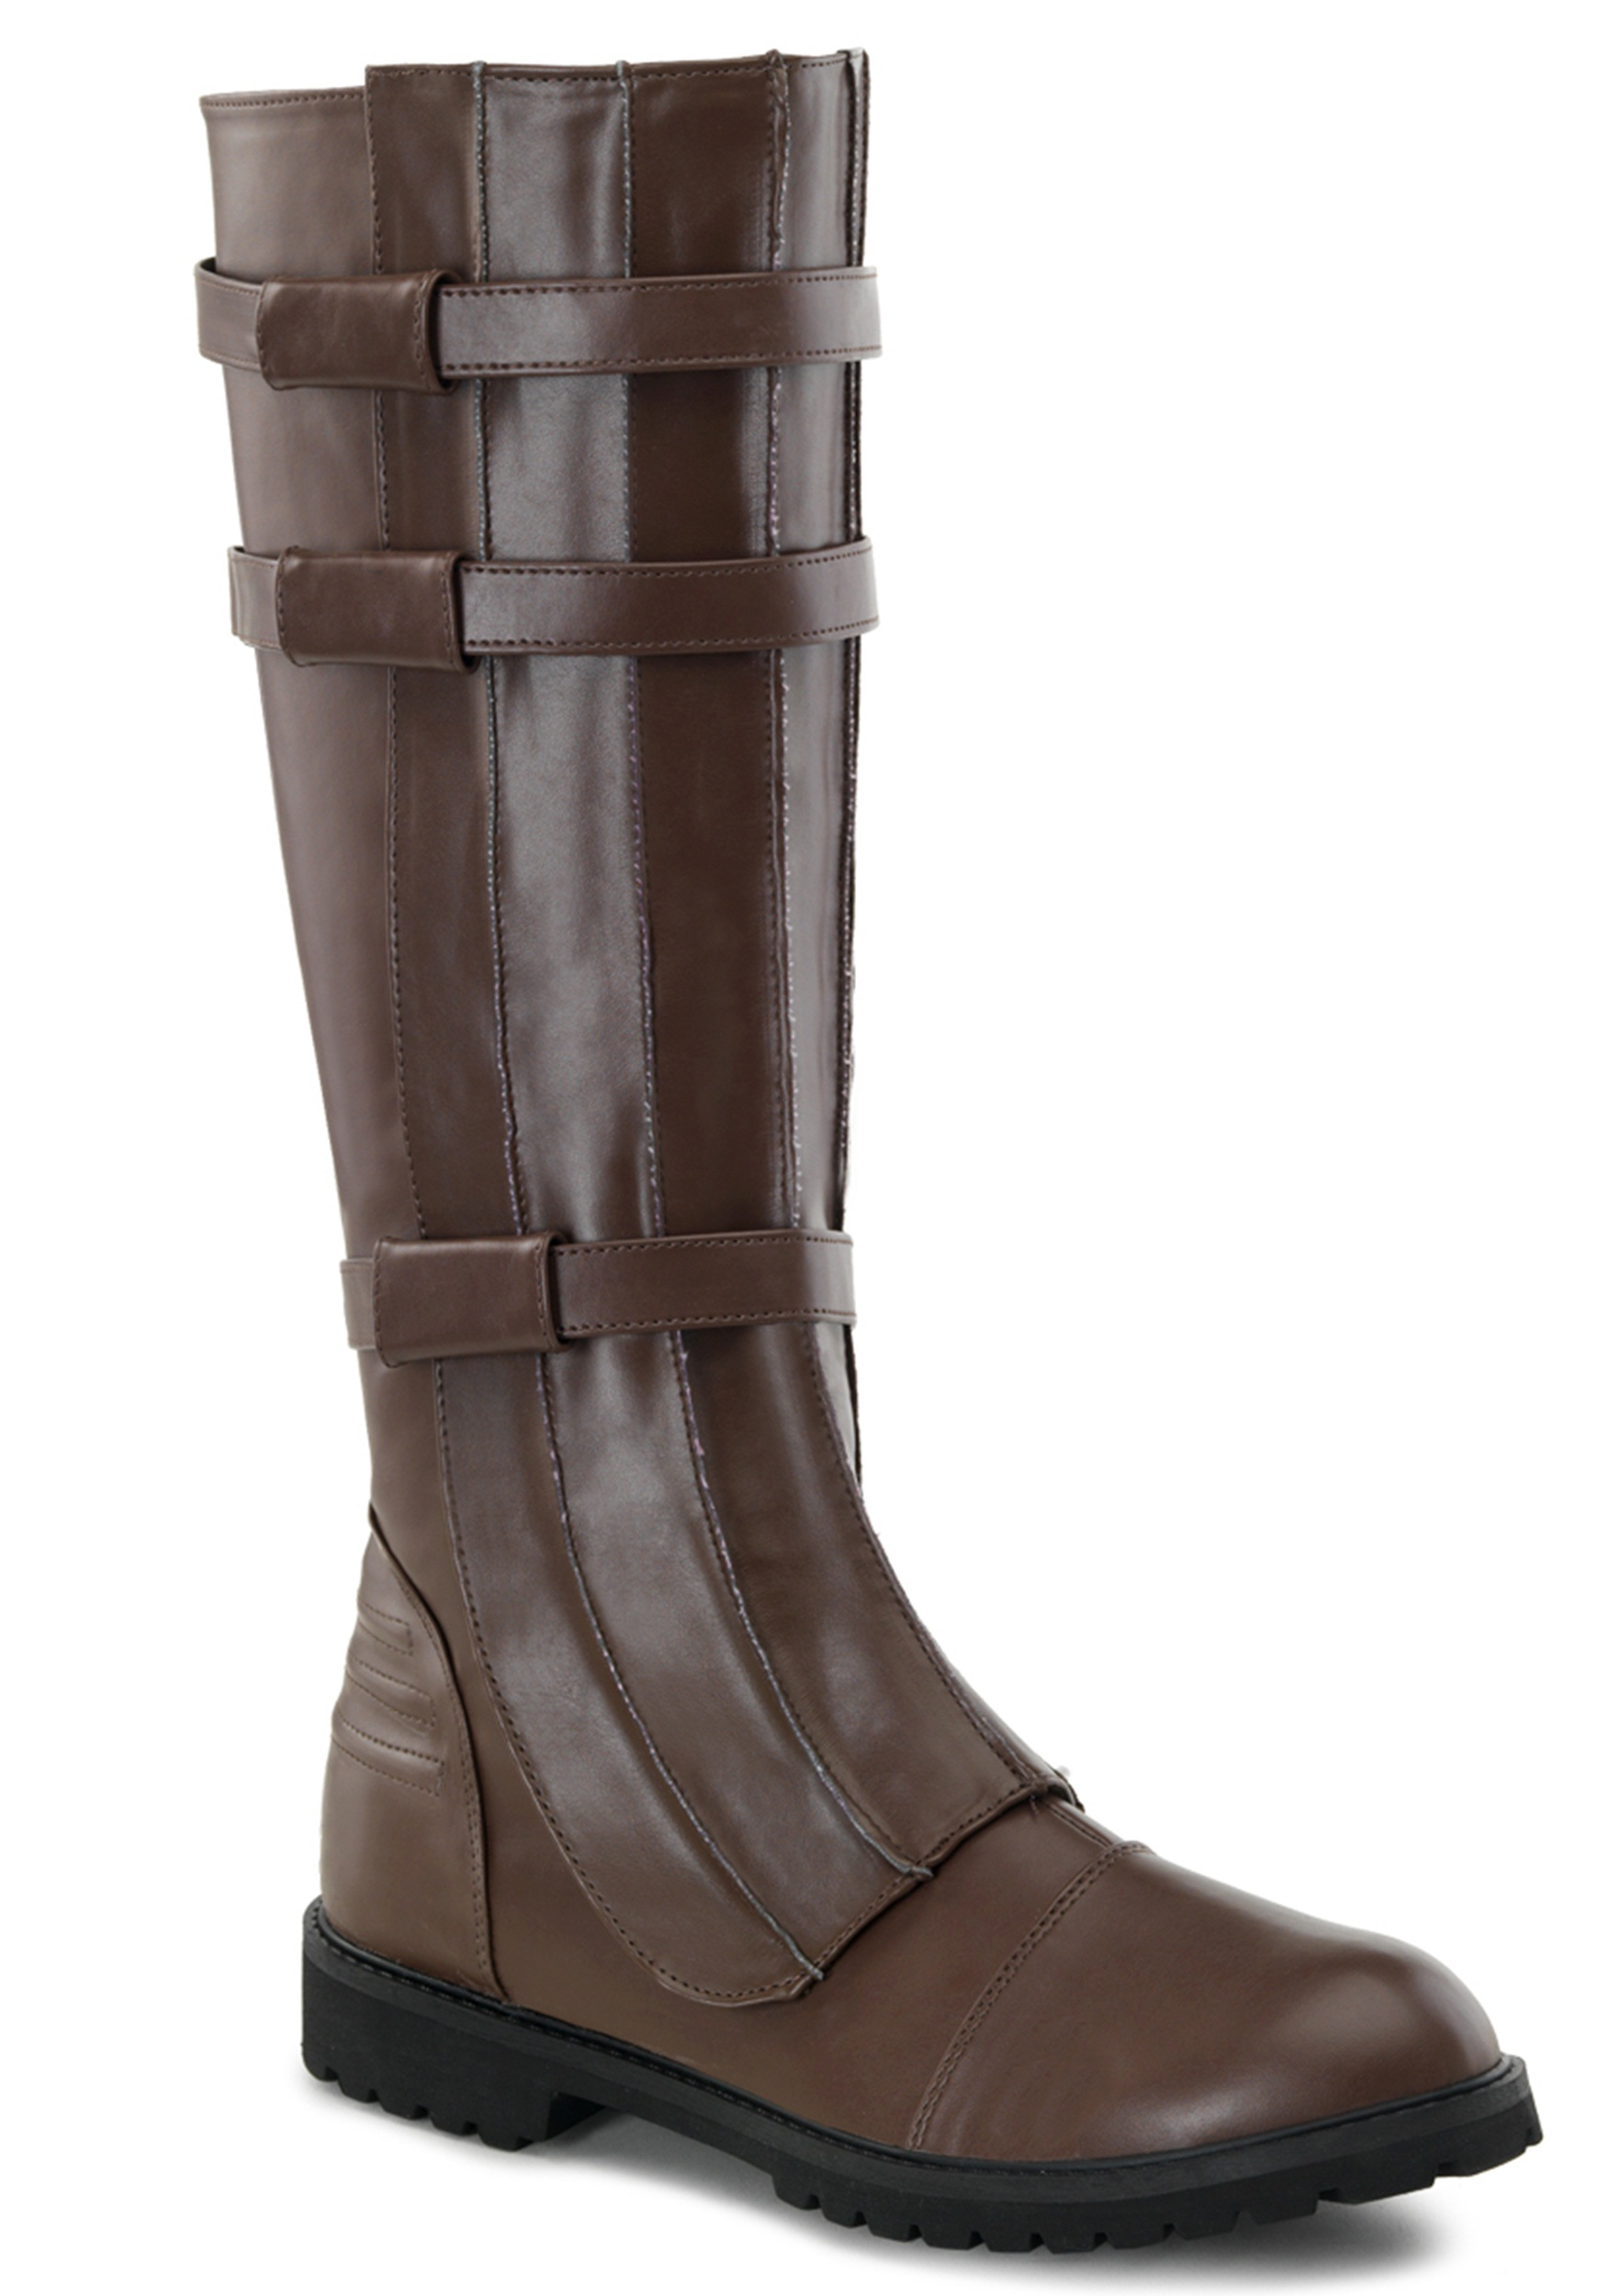 Mens Boots / Shoes - Adult Mens Shoes and Boots